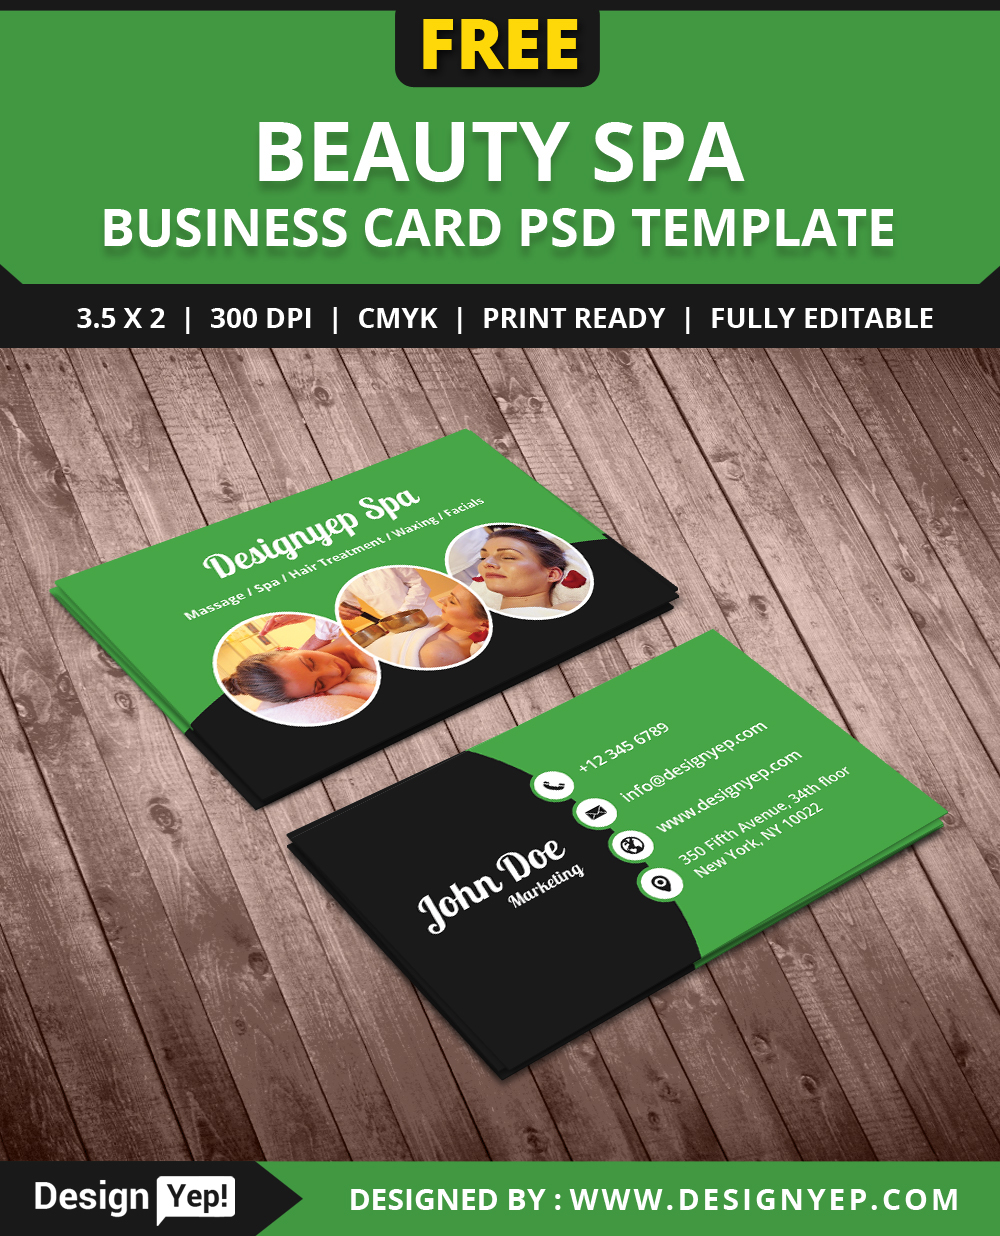 Free beauty spa business card psd template on behance reheart